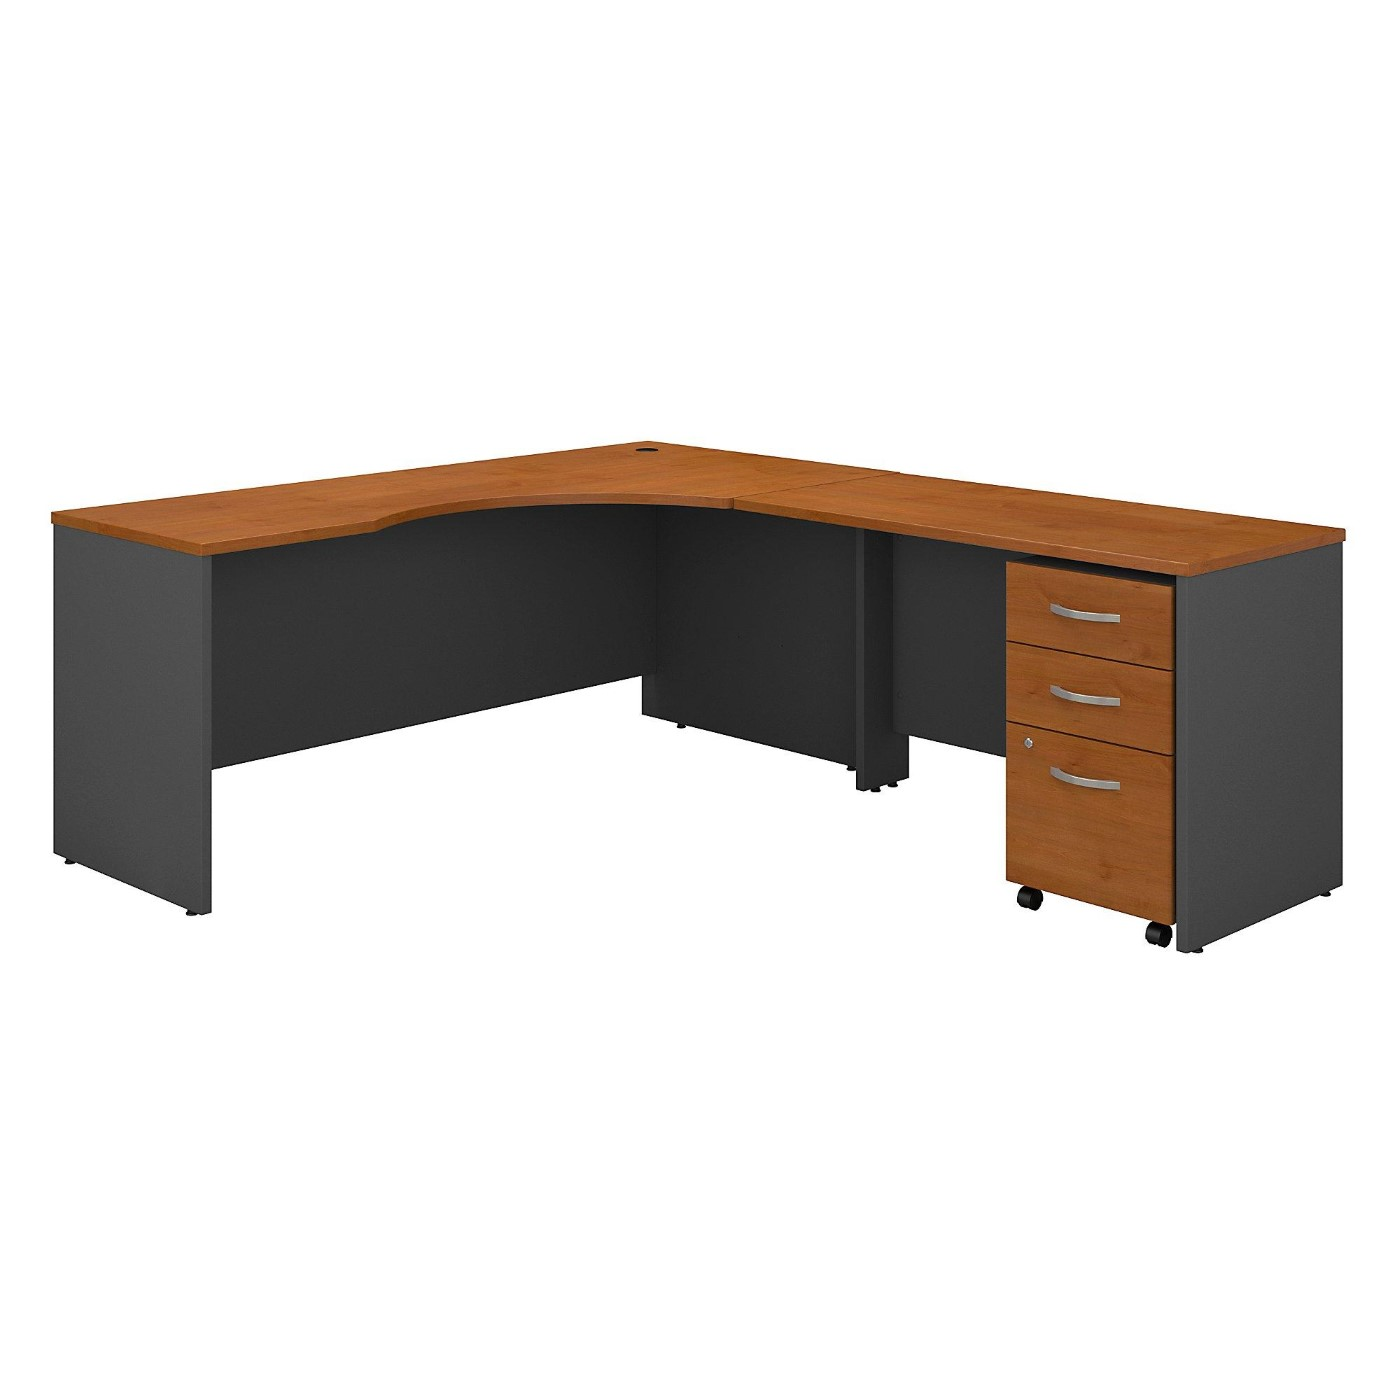 <font color=#c60><b>BUSH BUSINESS FURNITURE SERIES C 72W LEFT HANDED CORNER DESK WITH 48W RETURN AND MOBILE FILE CABINET. FREE SHIPPING</font></b>